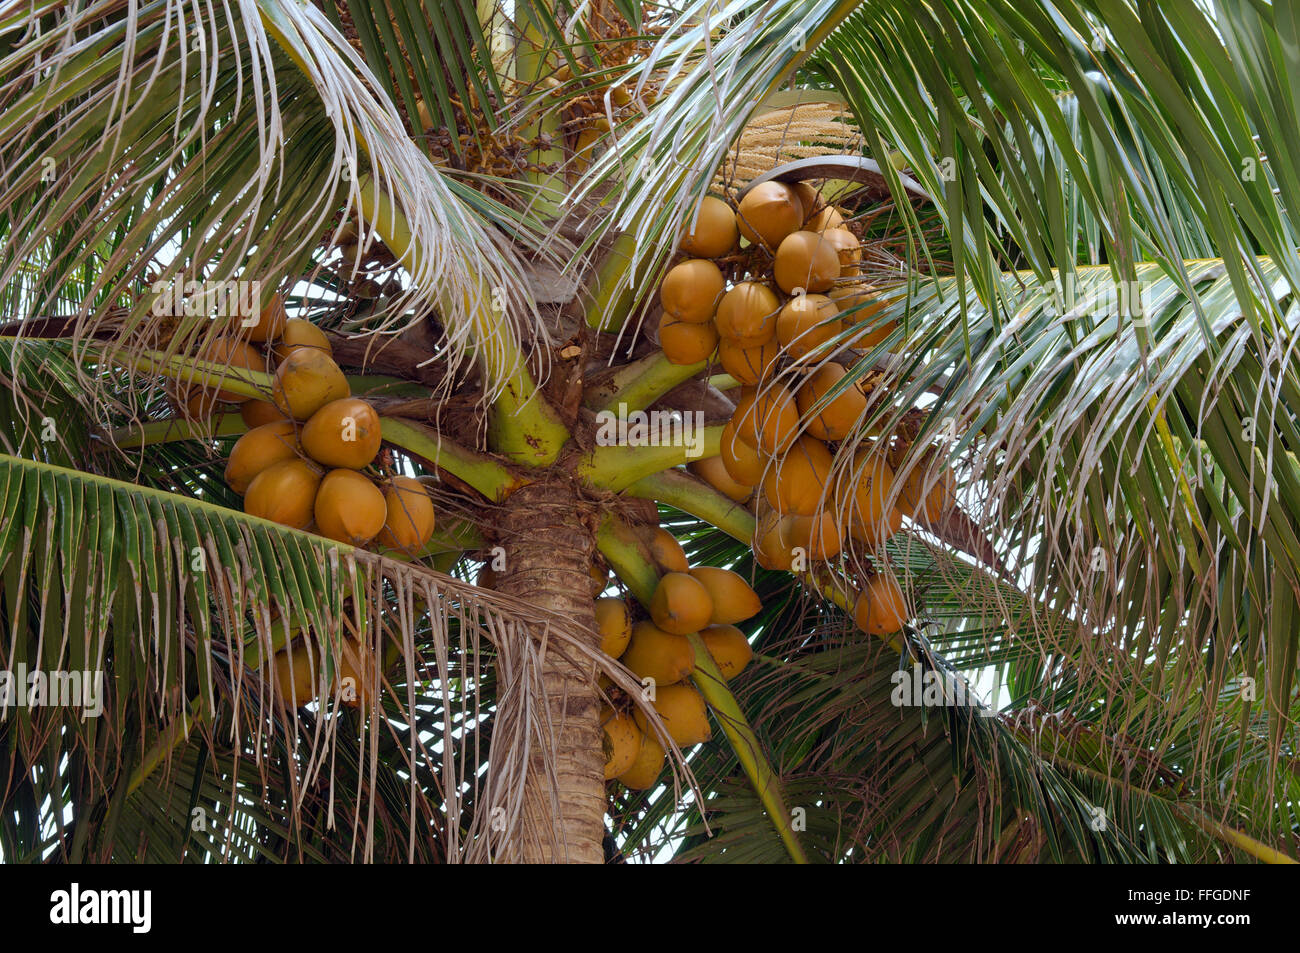 Asian nut bearing palm